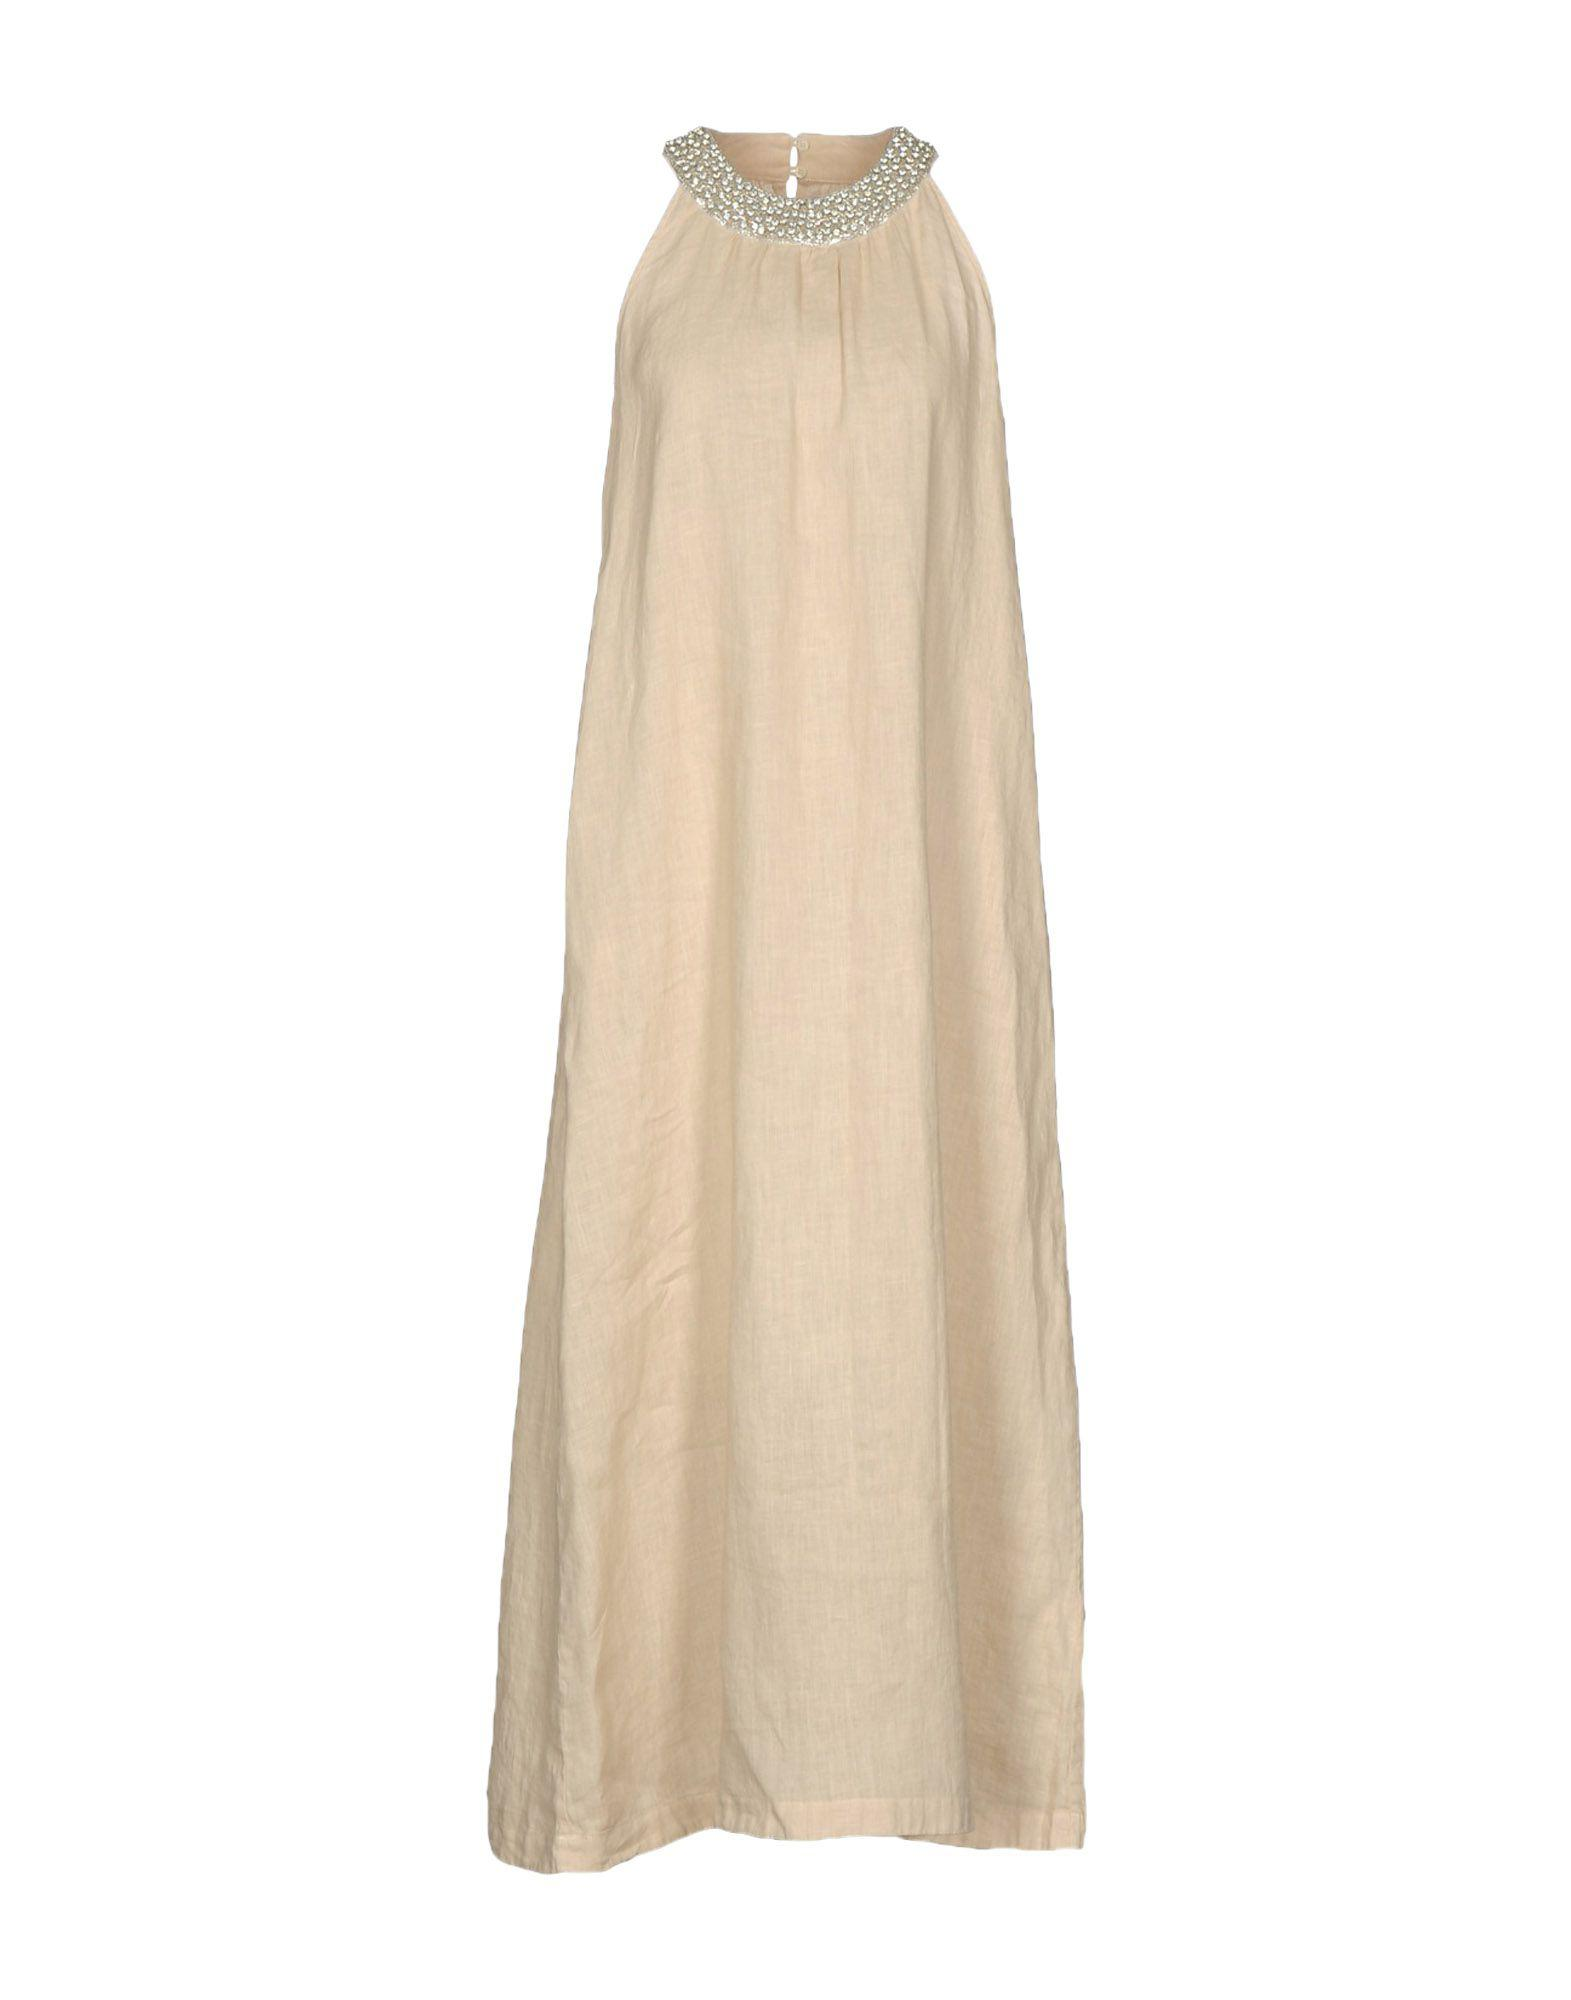 ed1d261e88 Lyst - 120% Lino Long Dress in Natural